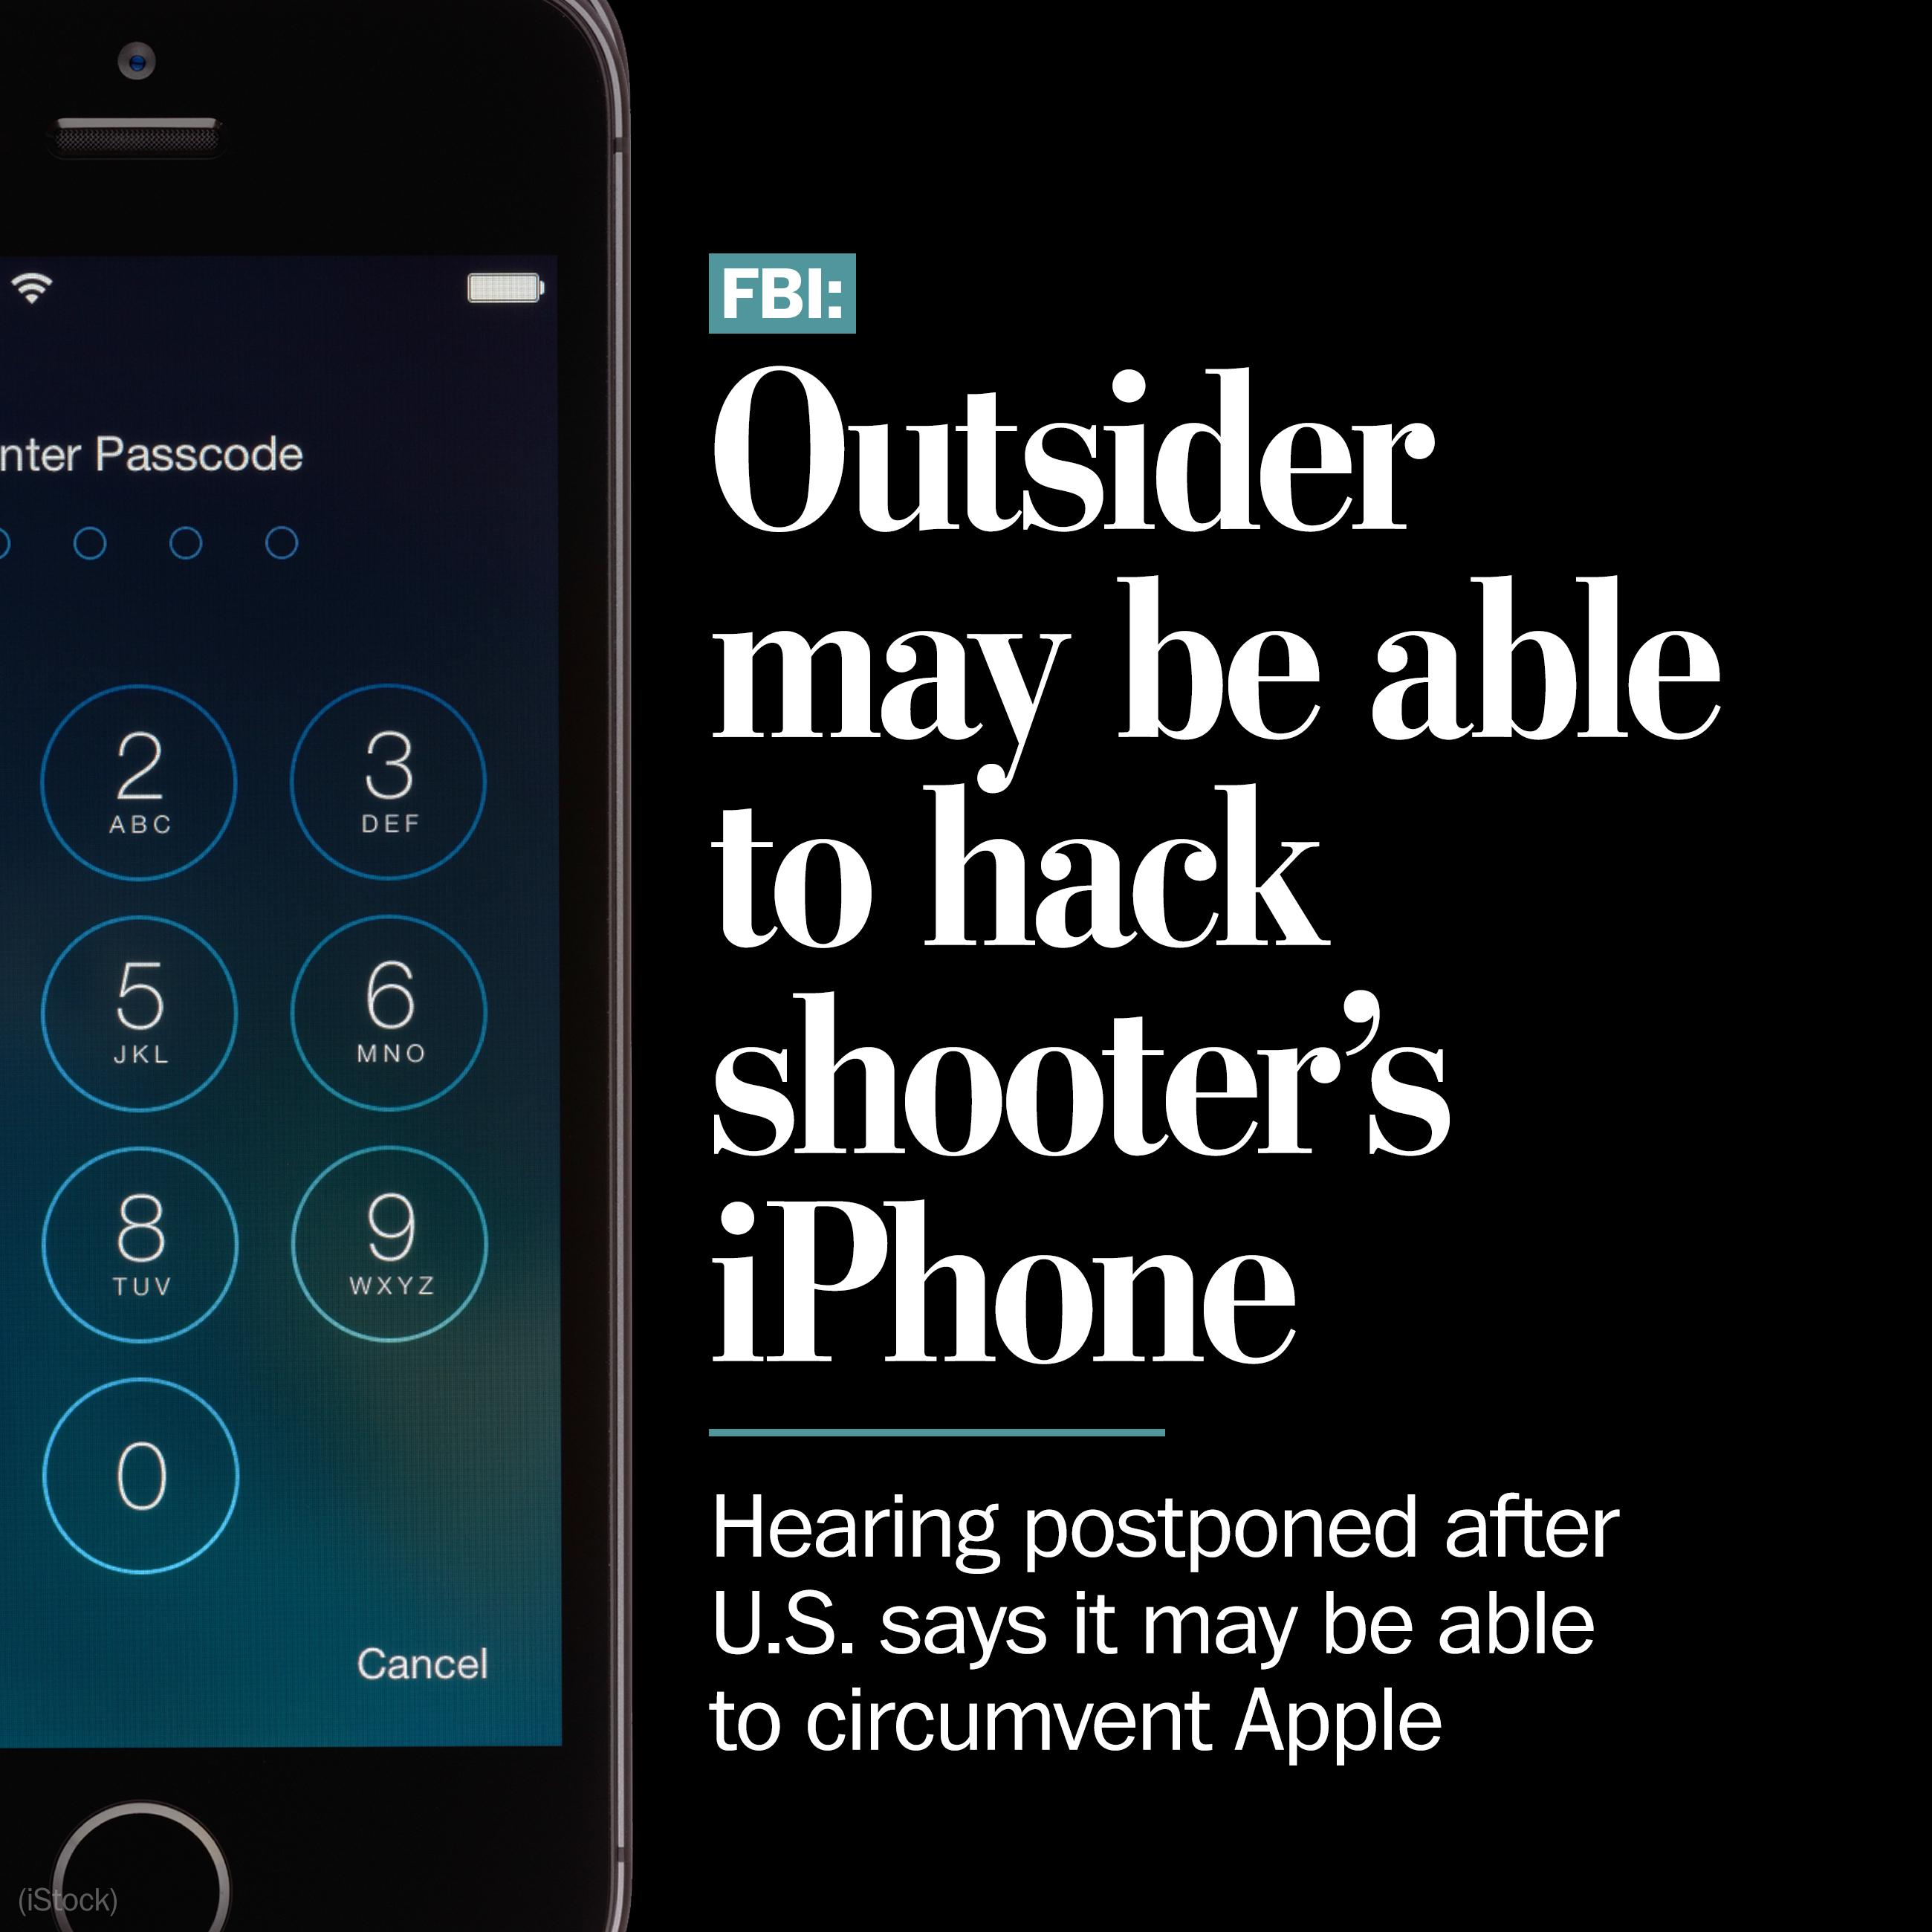 Hearing in San Bernardino over locked iPhone has been canceled